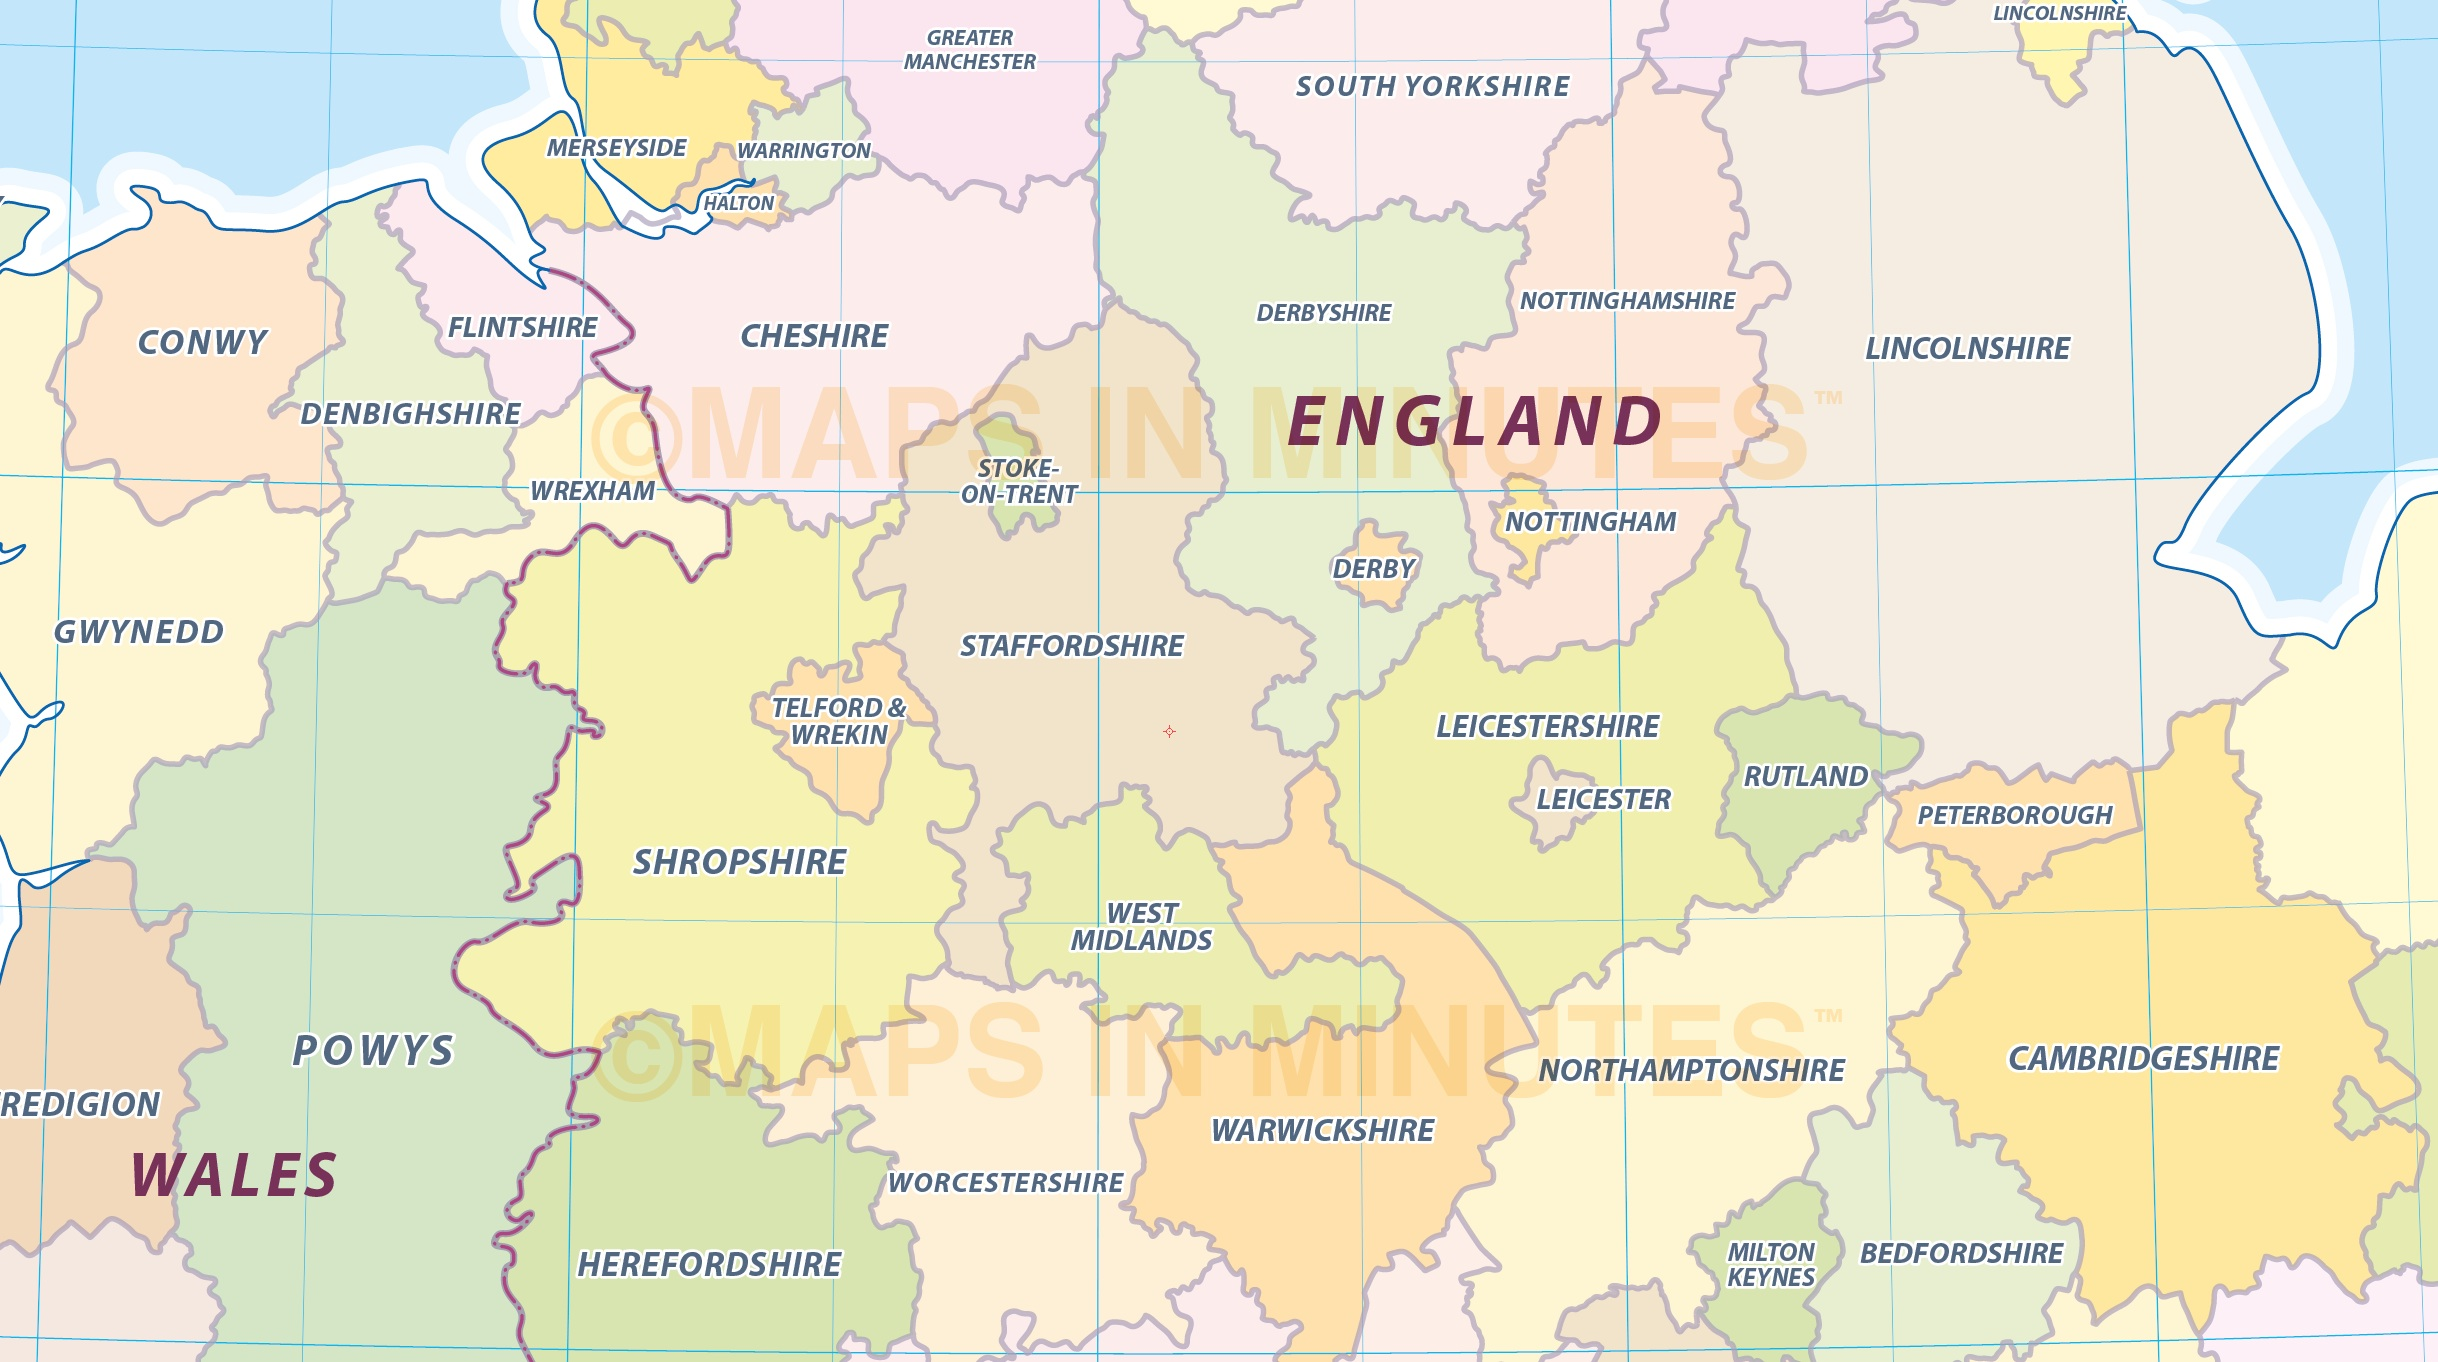 Digital uk simple county administrative map 5000000 scale digital vector uk county administrative map central england detail gumiabroncs Gallery